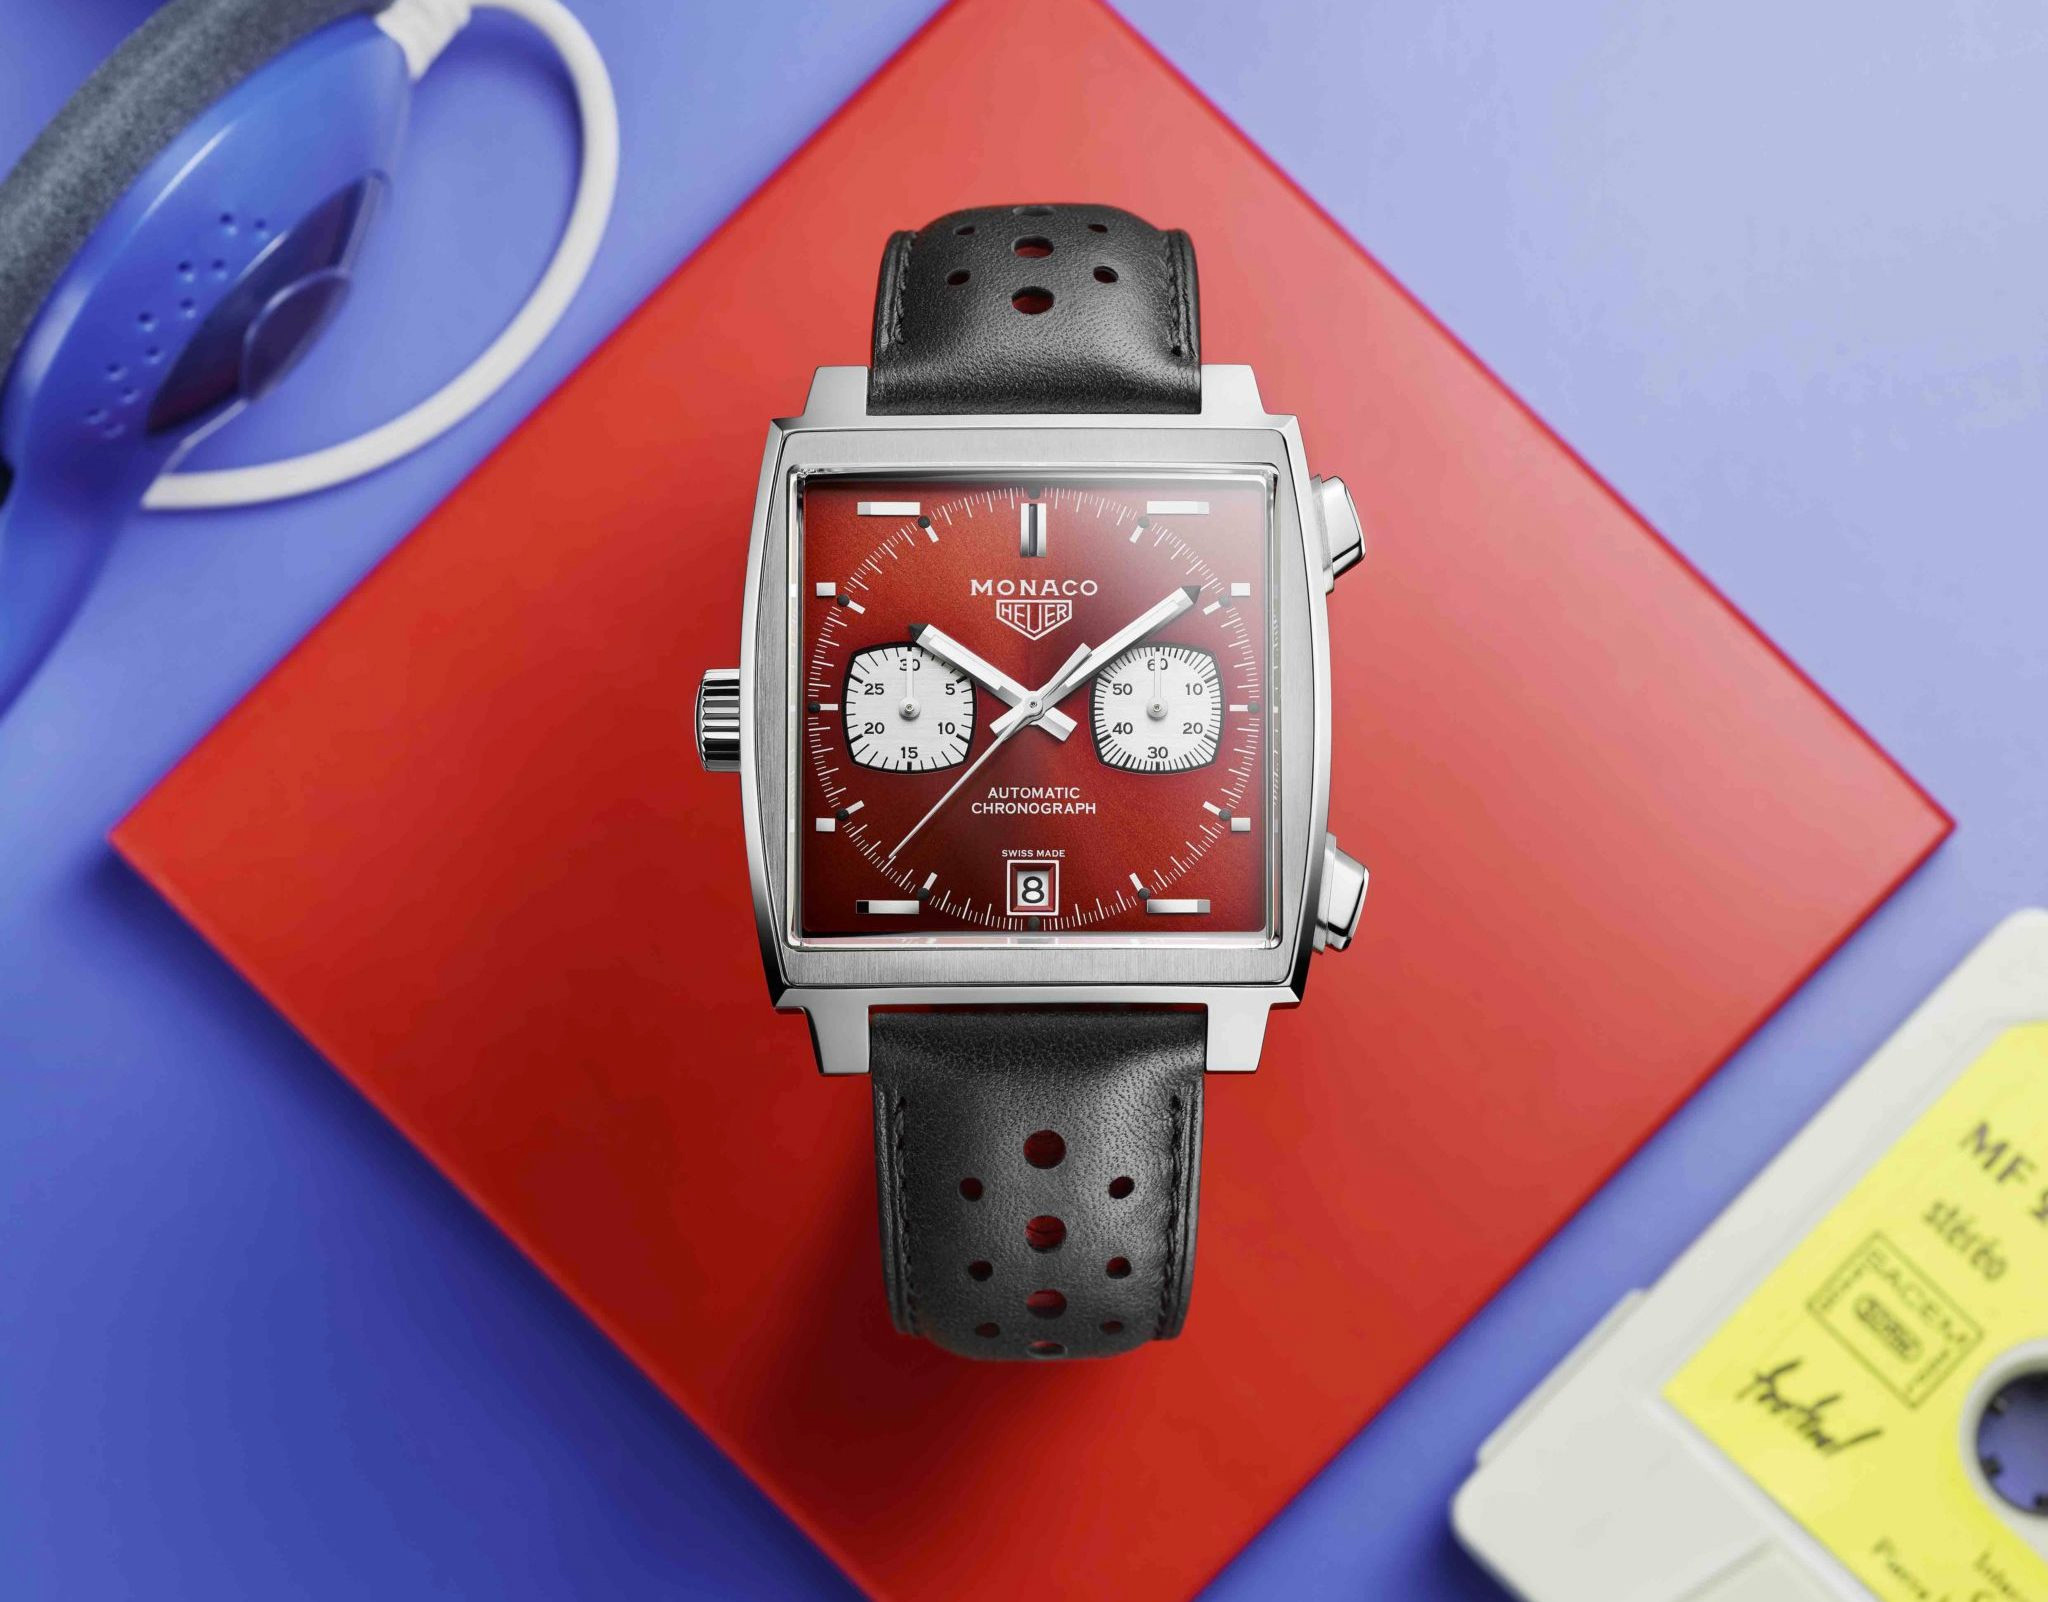 Tag Heuer Celebrates 50 Years Of The Iconic Monaco with an 80s Inspired Design at werd.com